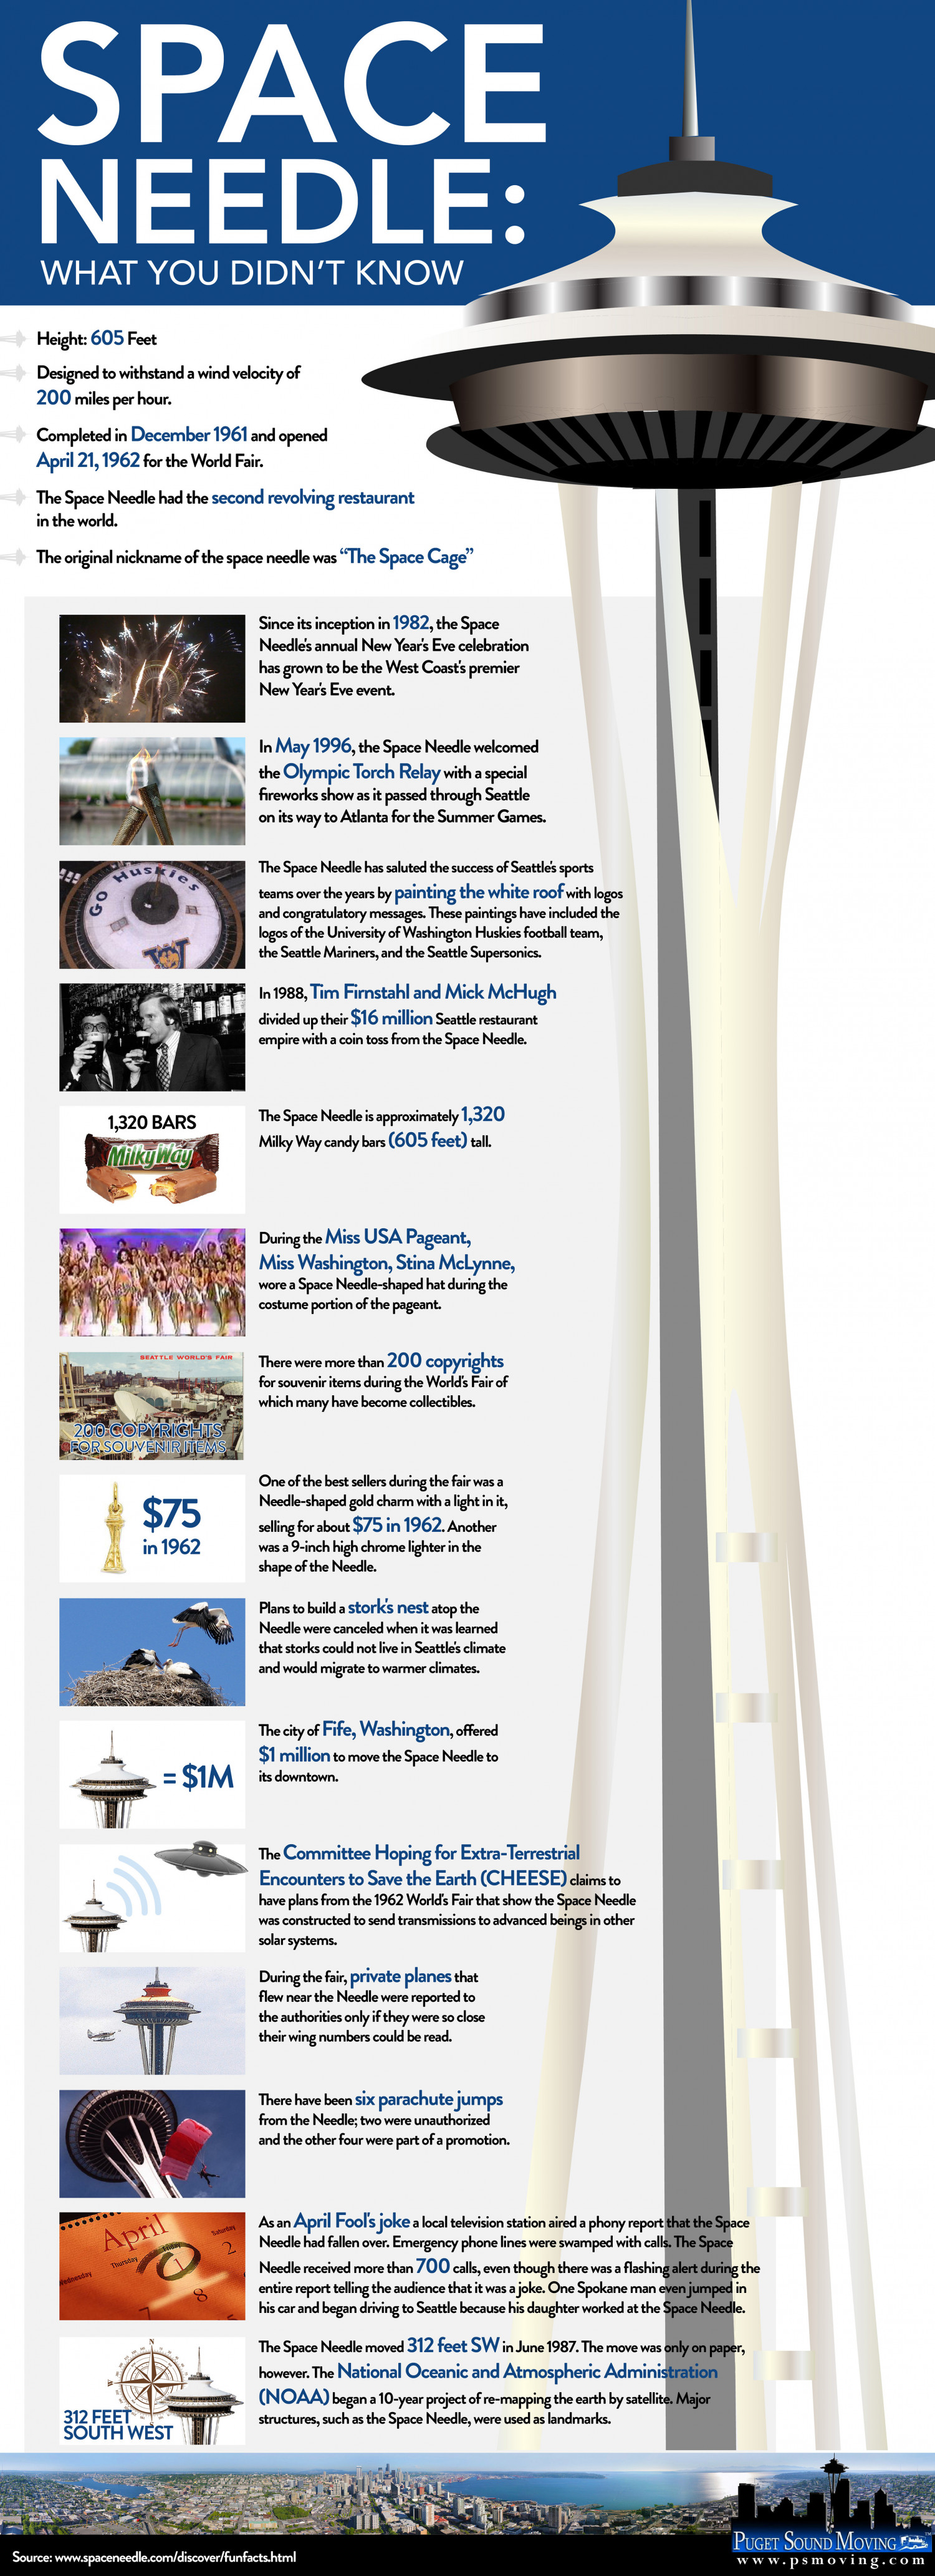 Space Needle: What you didn't know Infographic